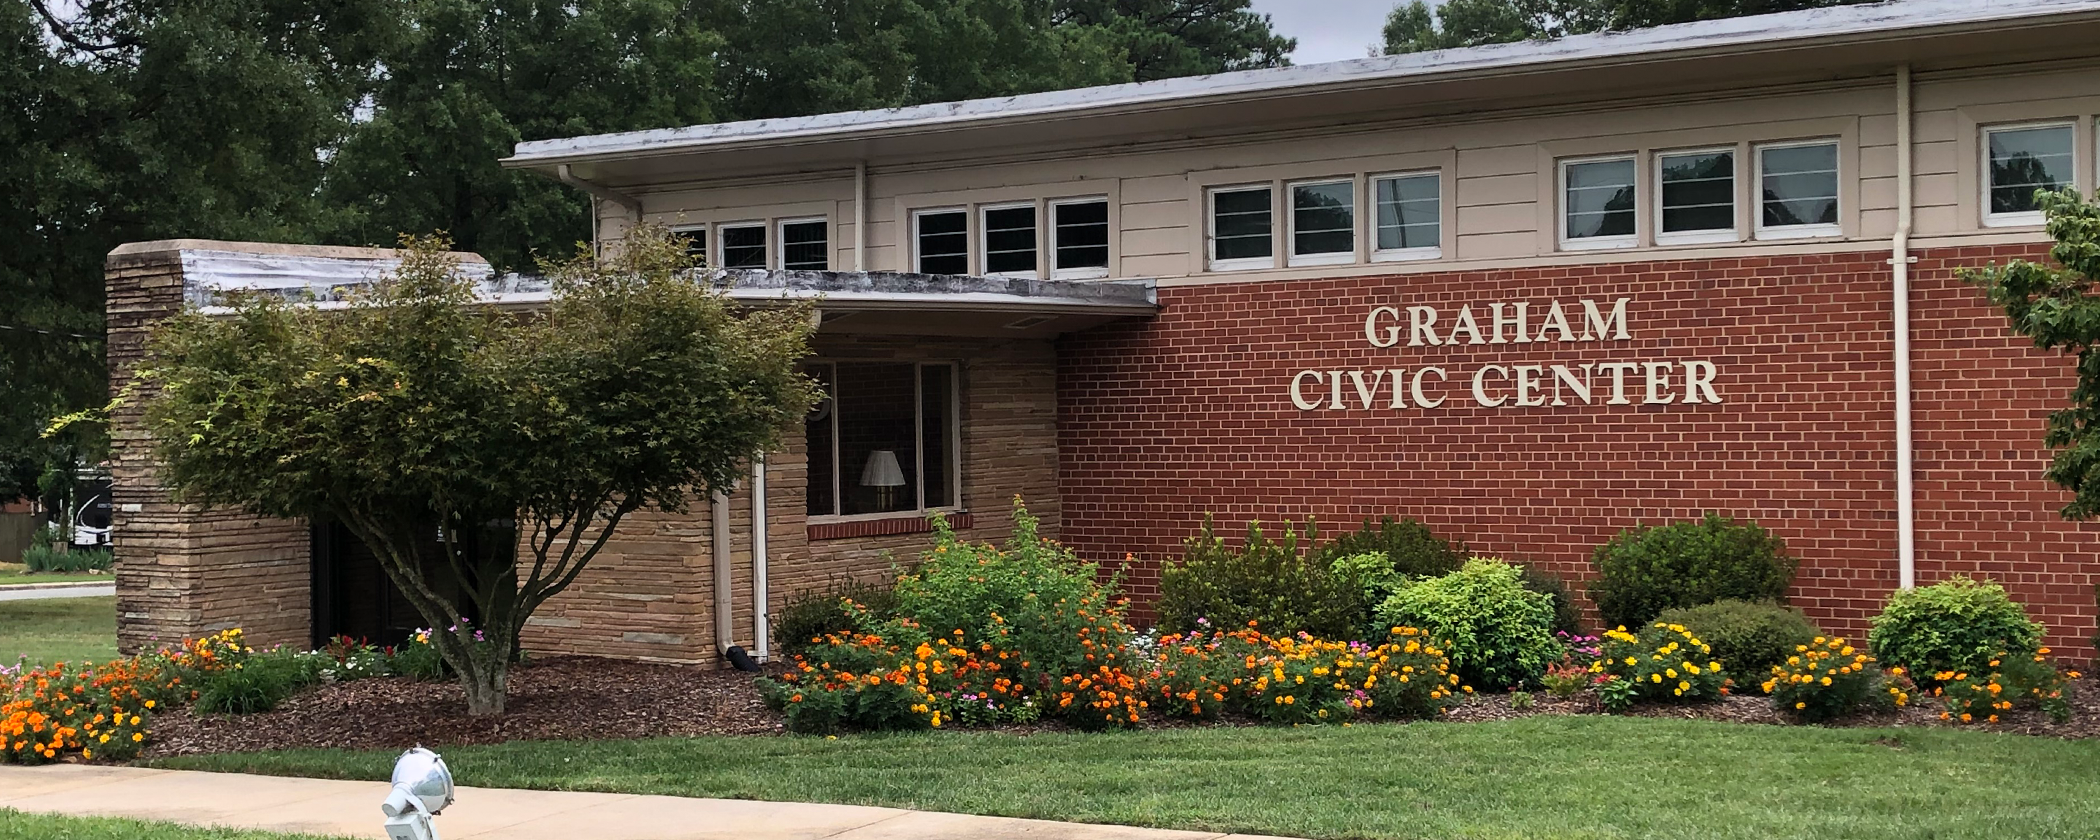 Front of the Graham Civic Center Building